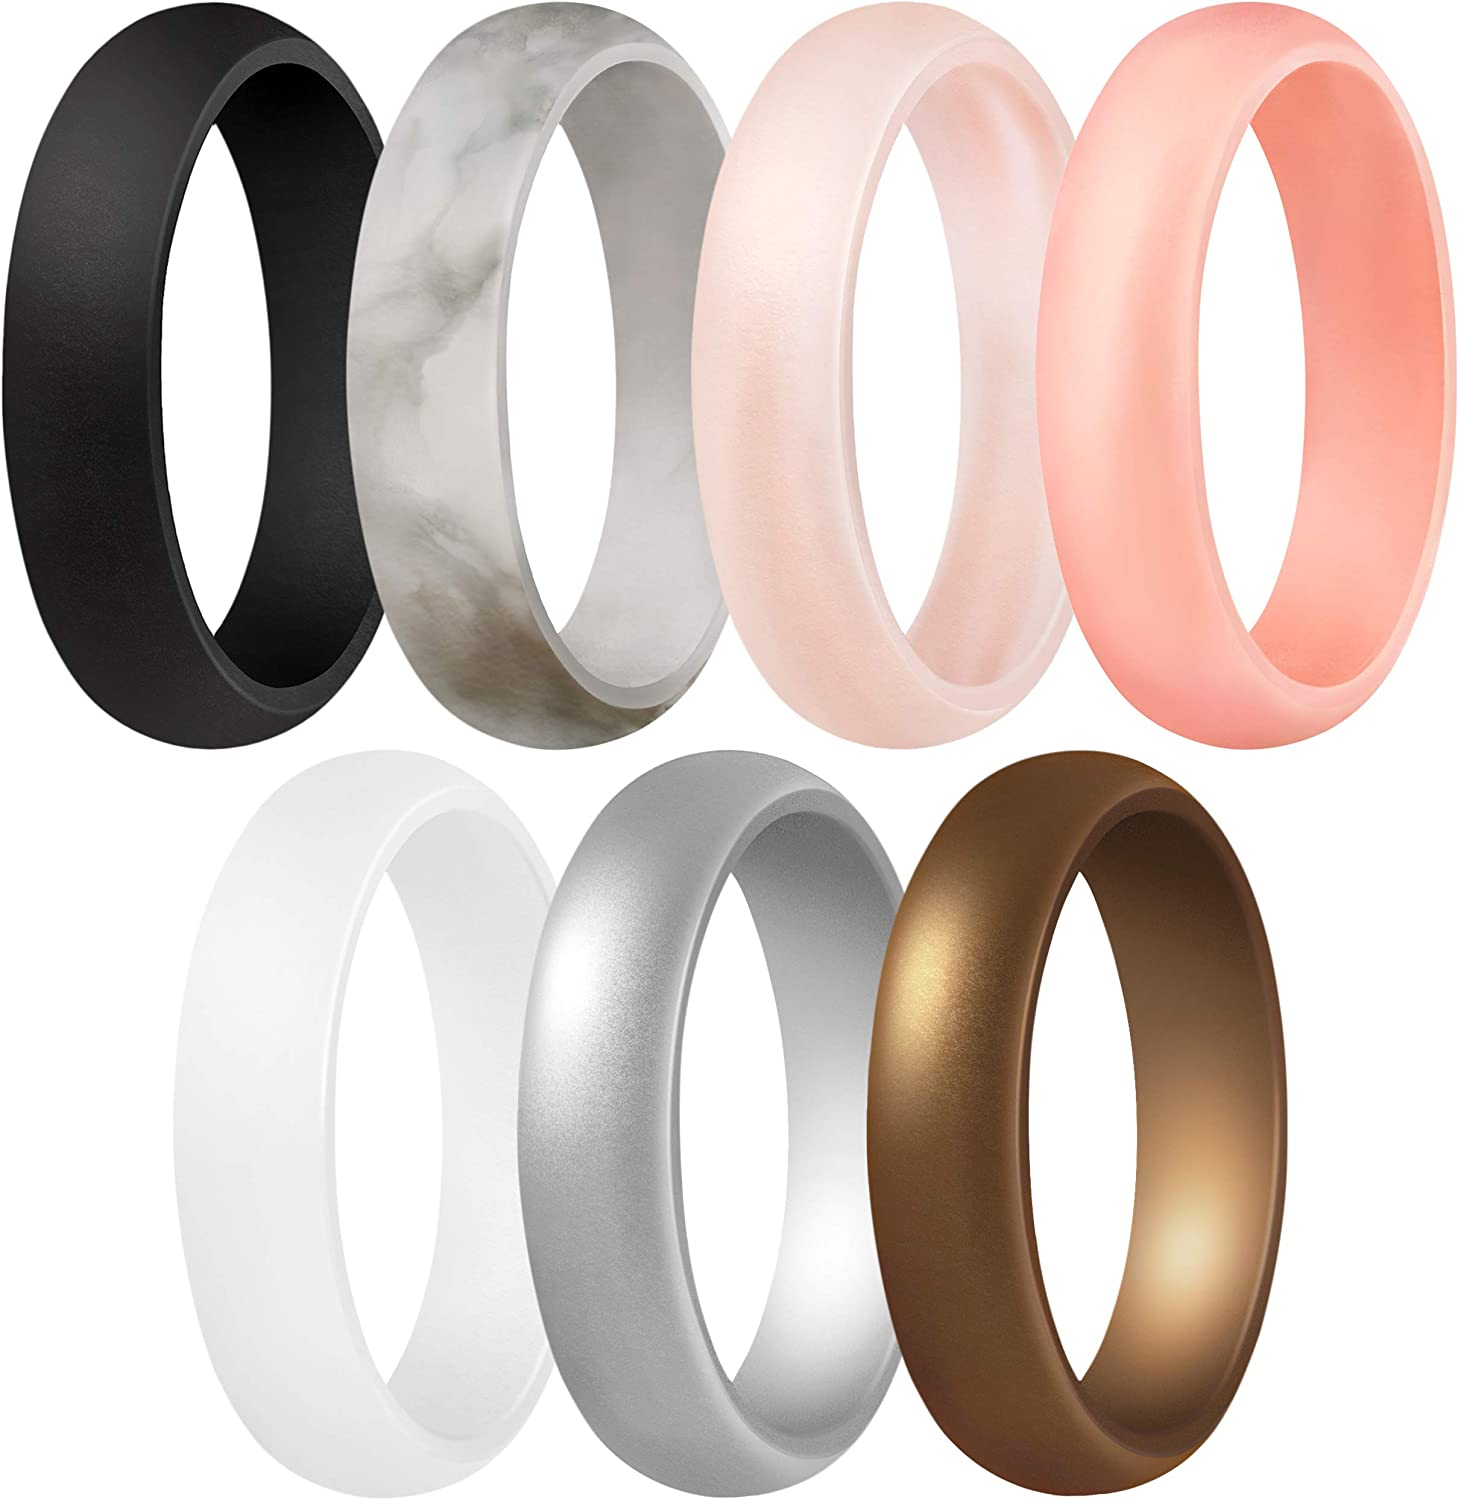 ThunderFit Women's Silicone Wedding Ring - Rubber Wedding Band - 5.5mm Wide, 2mm Thick